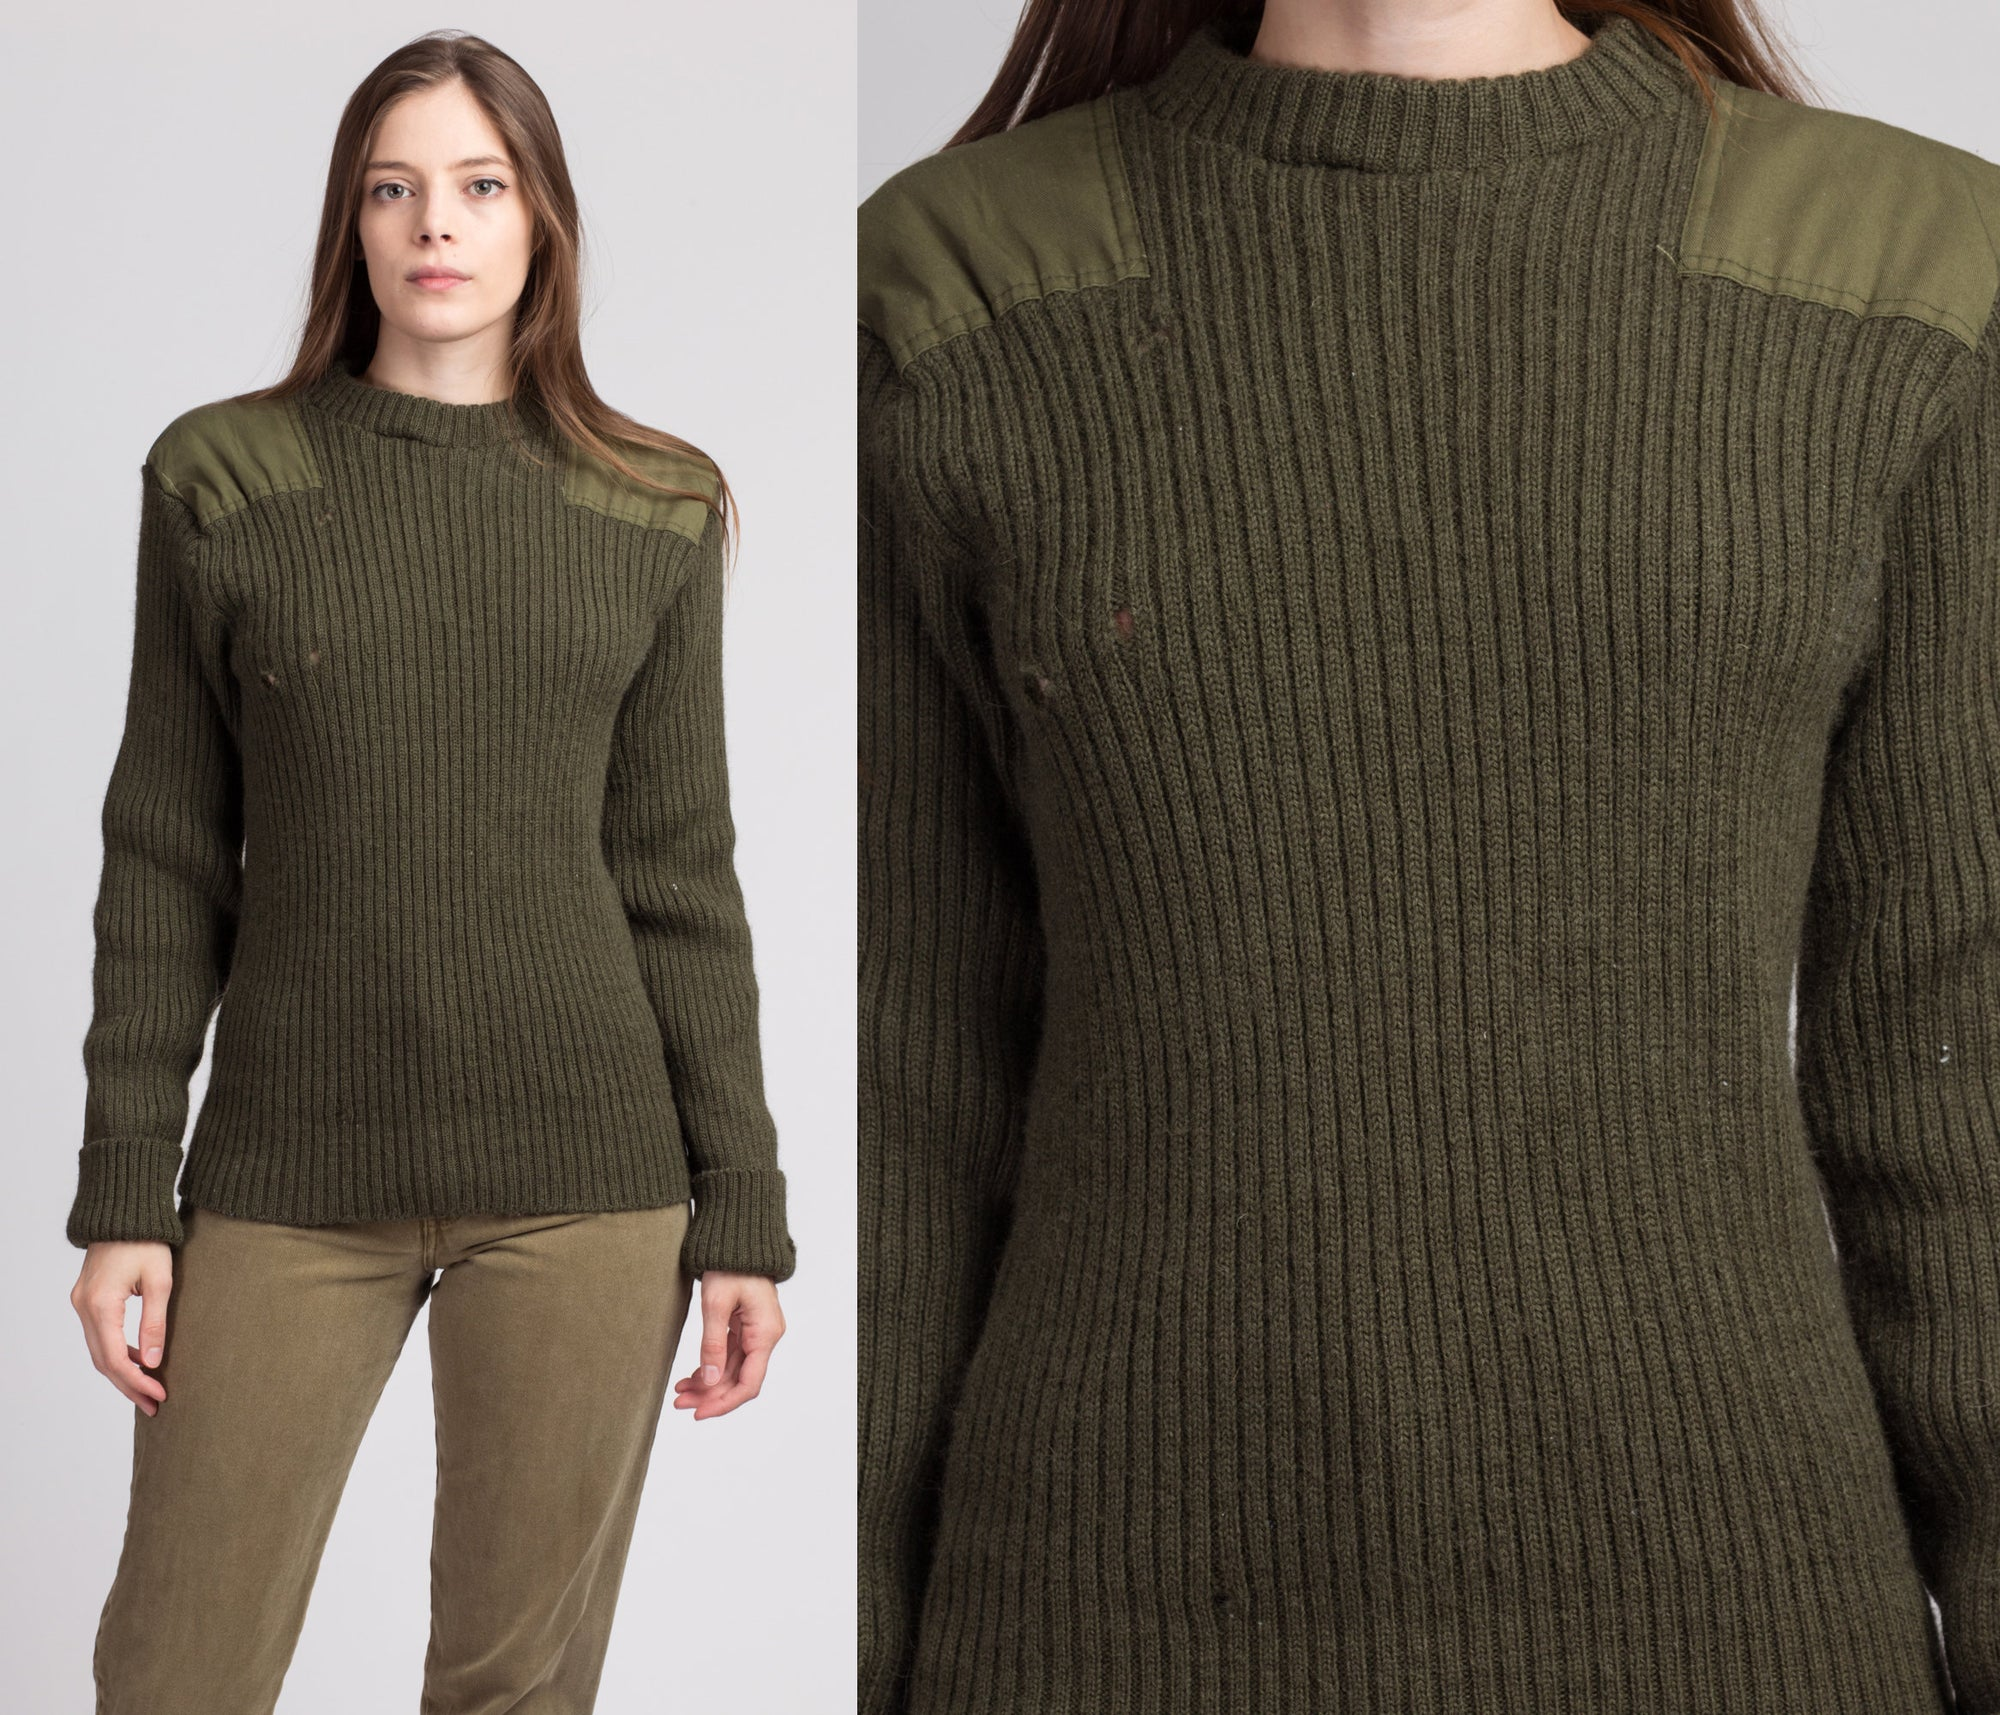 70s Army Green Commando Sweater - Large